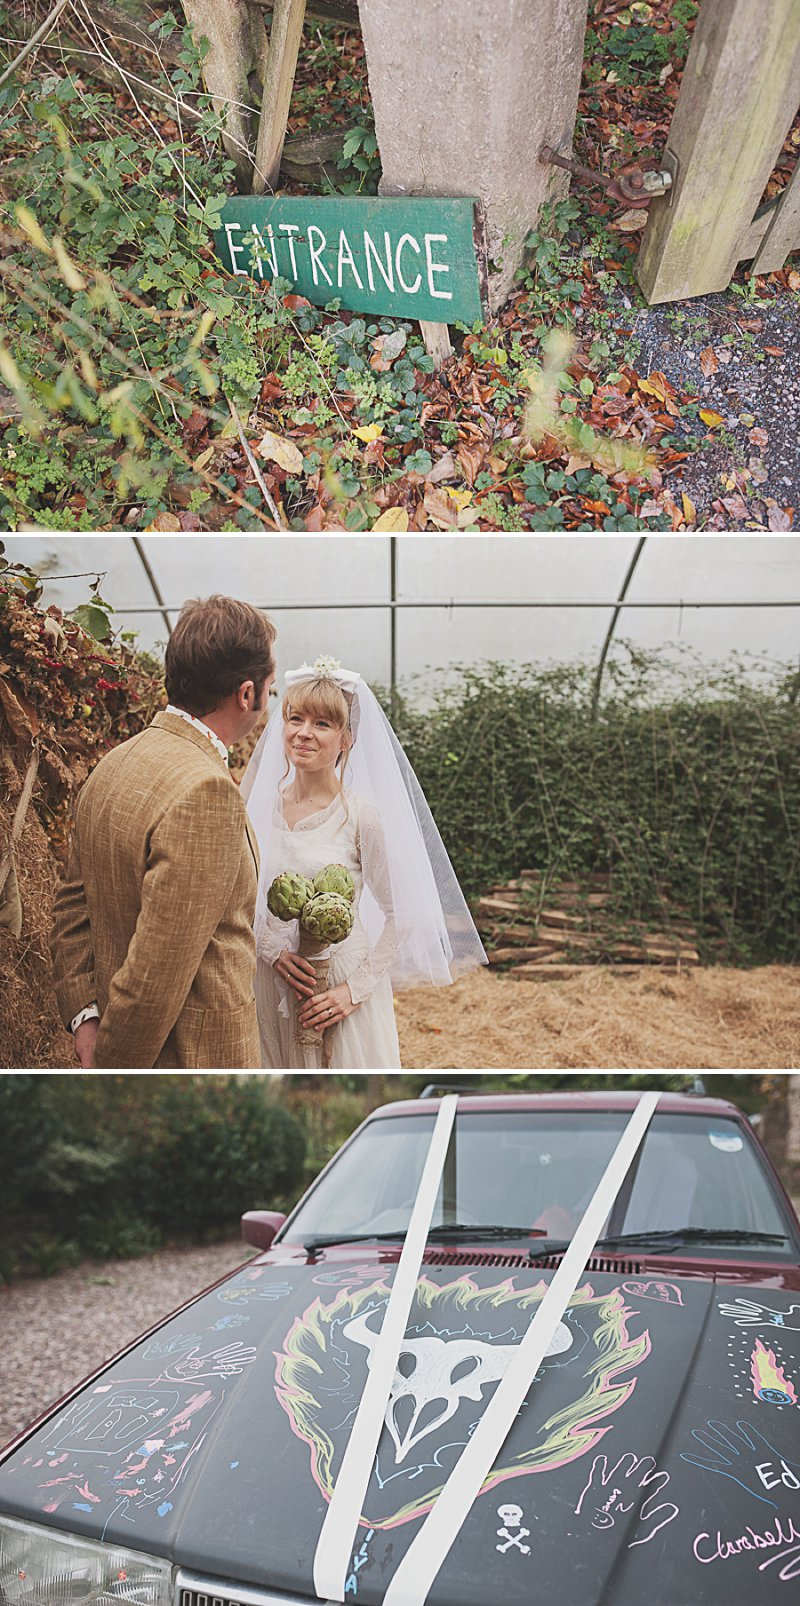 A DIY Wedding with homemade flowers, flamingo art, a polytunnel ceremony, apples, pumpkins, vintage dress and suit and vegetable bouquets.  Apple sharing ceremony at home with photography by Camilla Rosa_0005